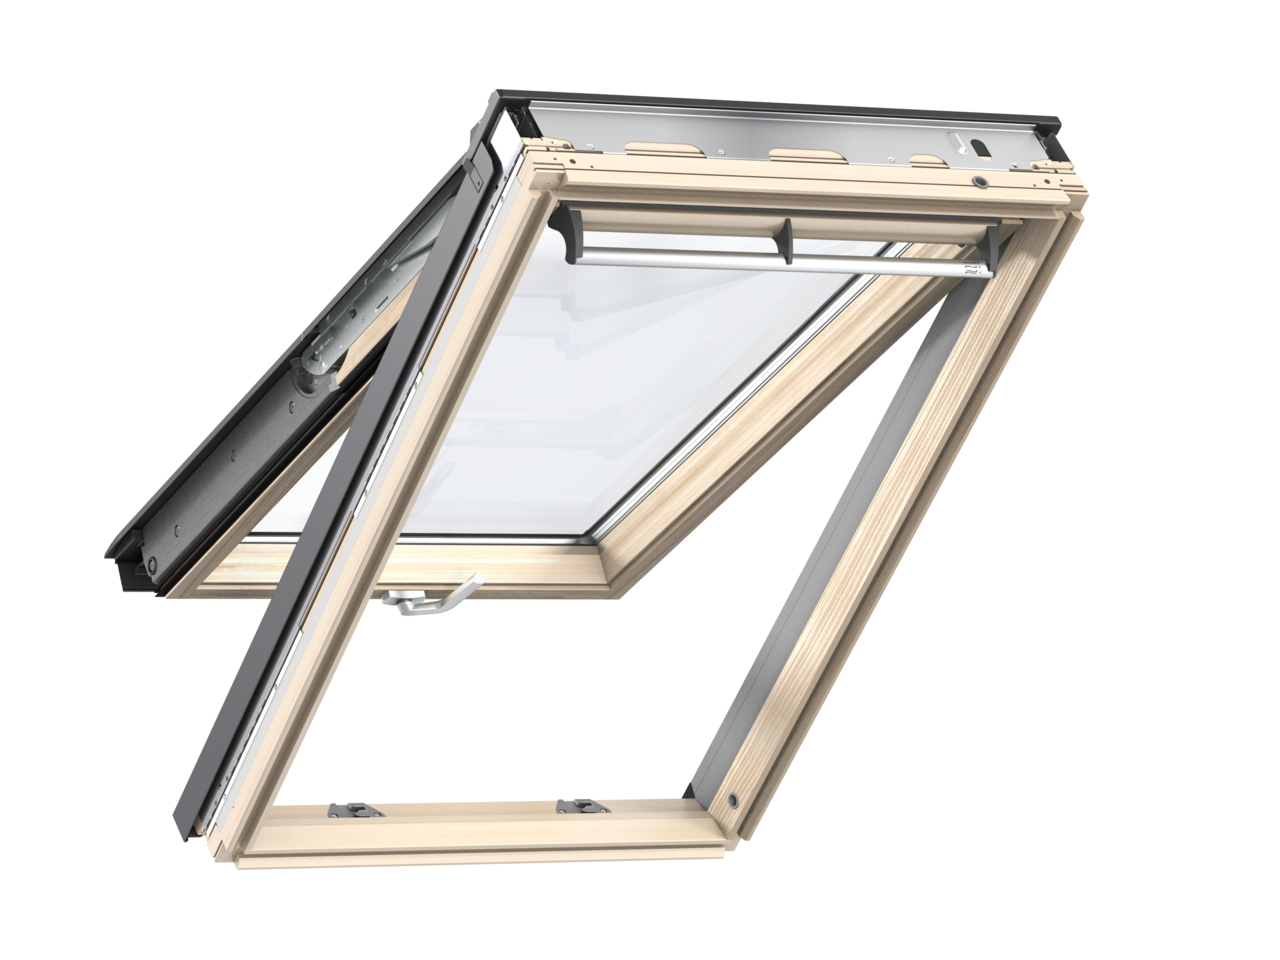 Velux GPL PK10 940 x 1600mm Top Hung Standard 70Pane Roof Window - Pine